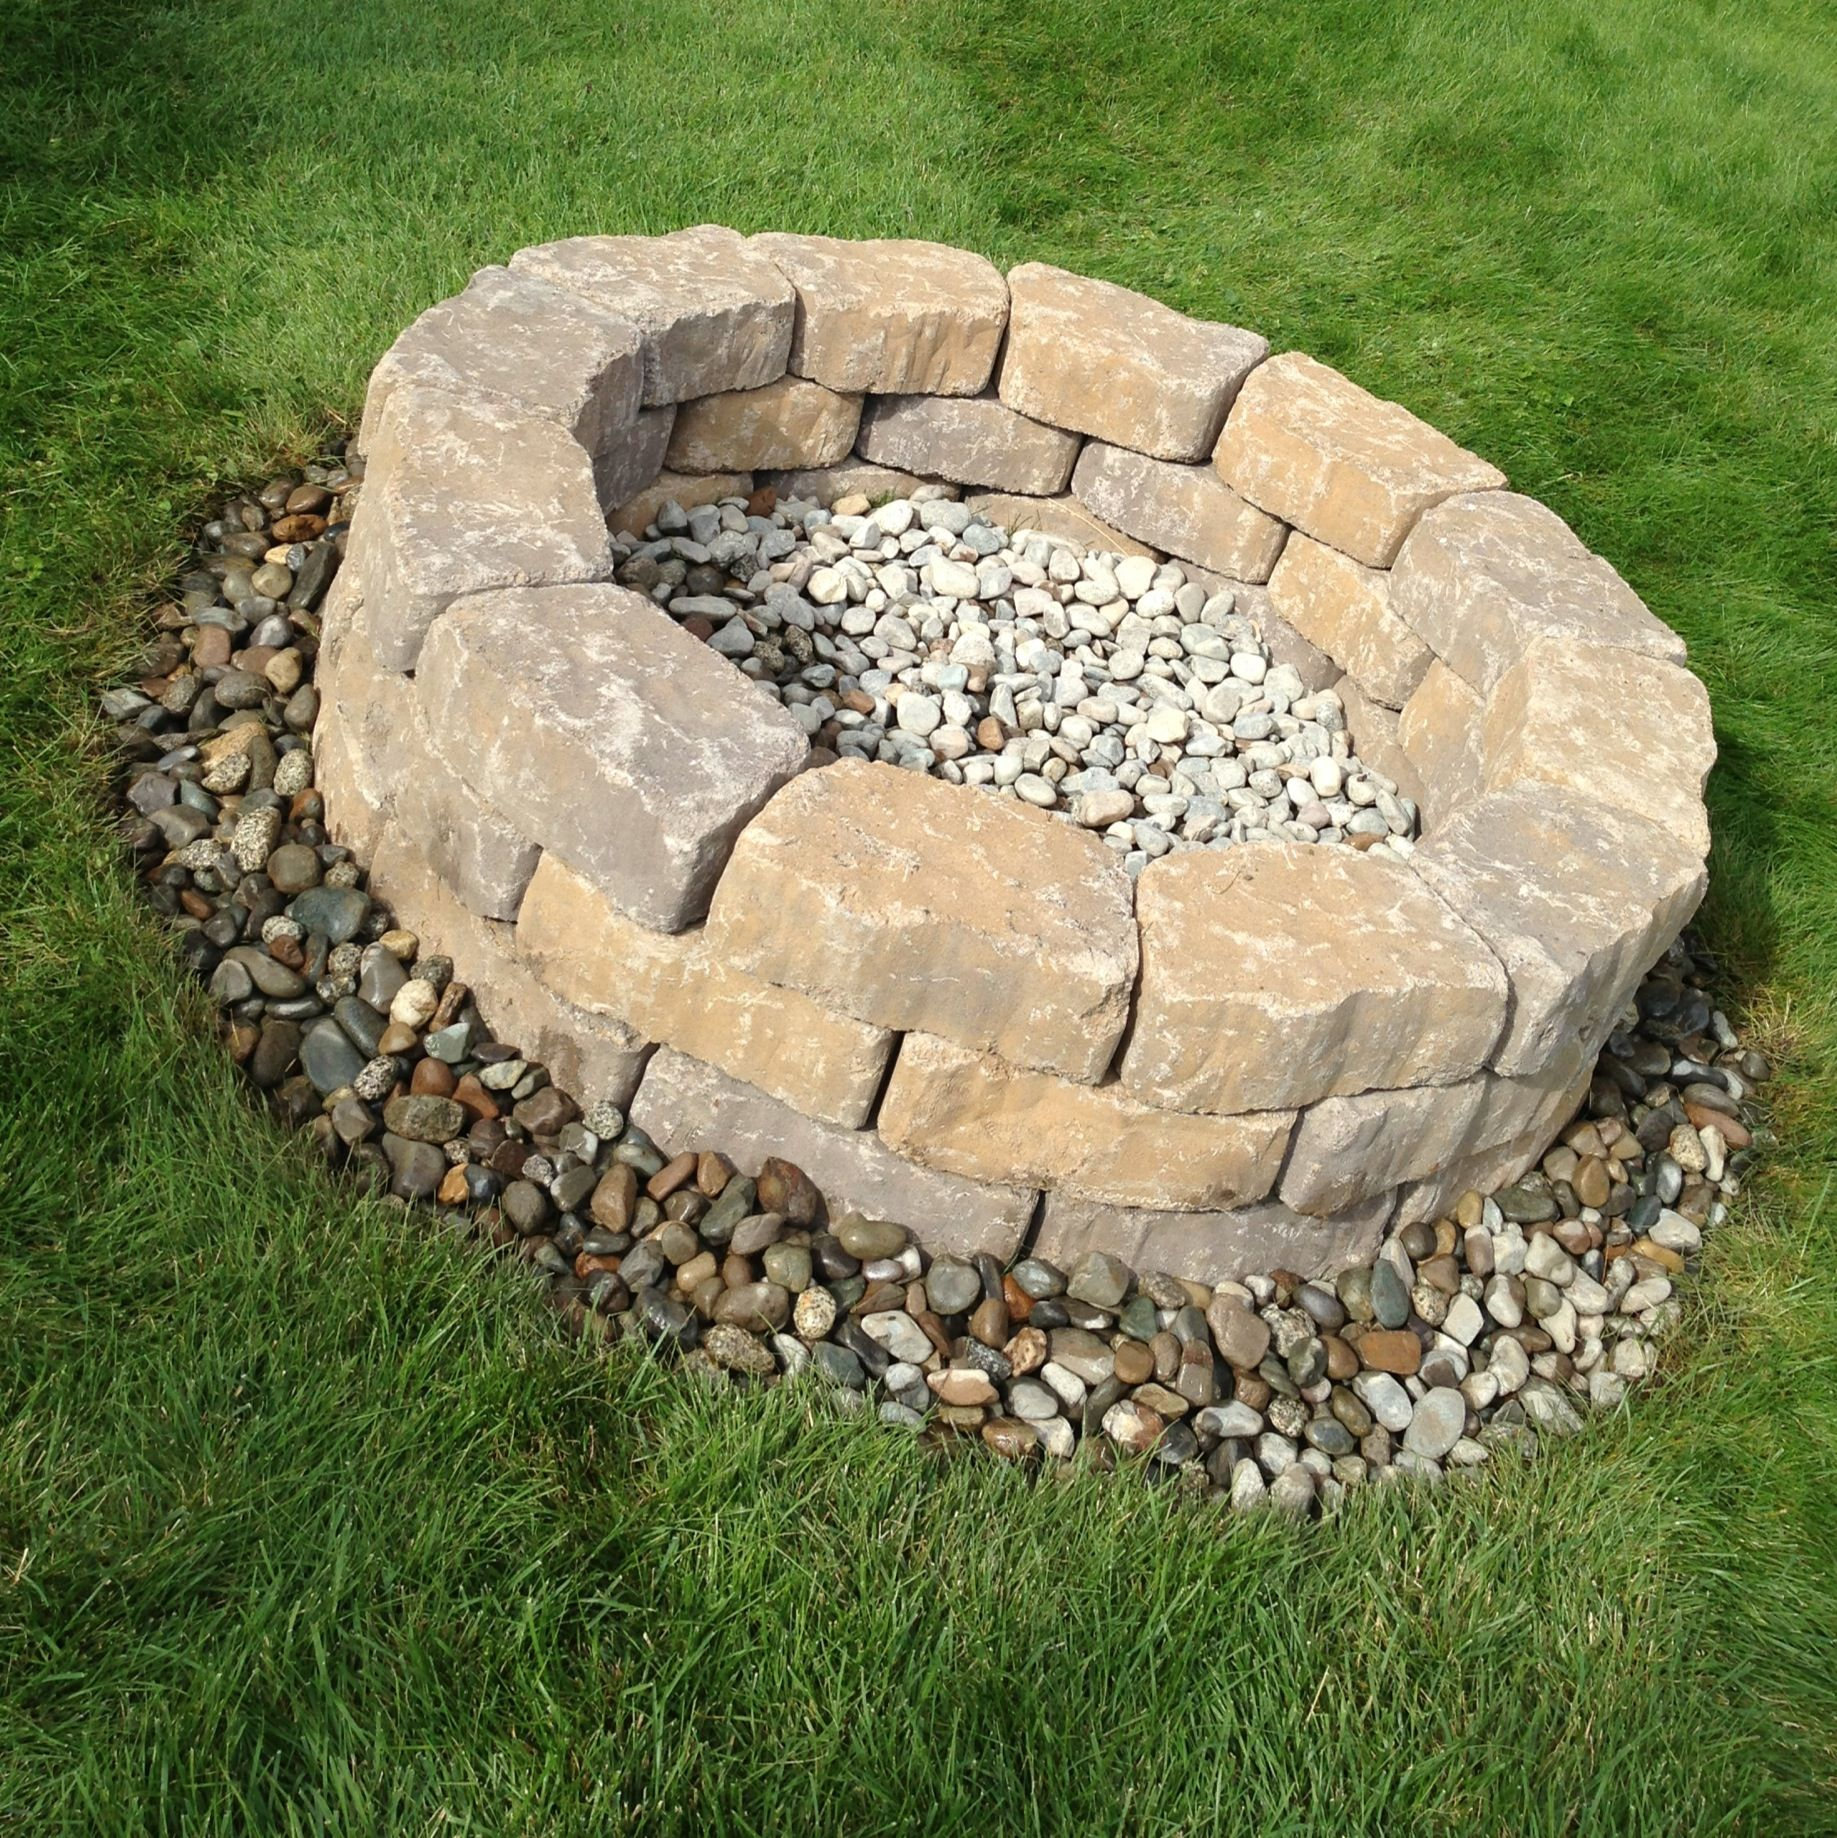 904fc68d009fe50b6a224ab762fc3e35 Top Result 50 Awesome Easy to Build Fire Pit Pic 2018 Hiw6